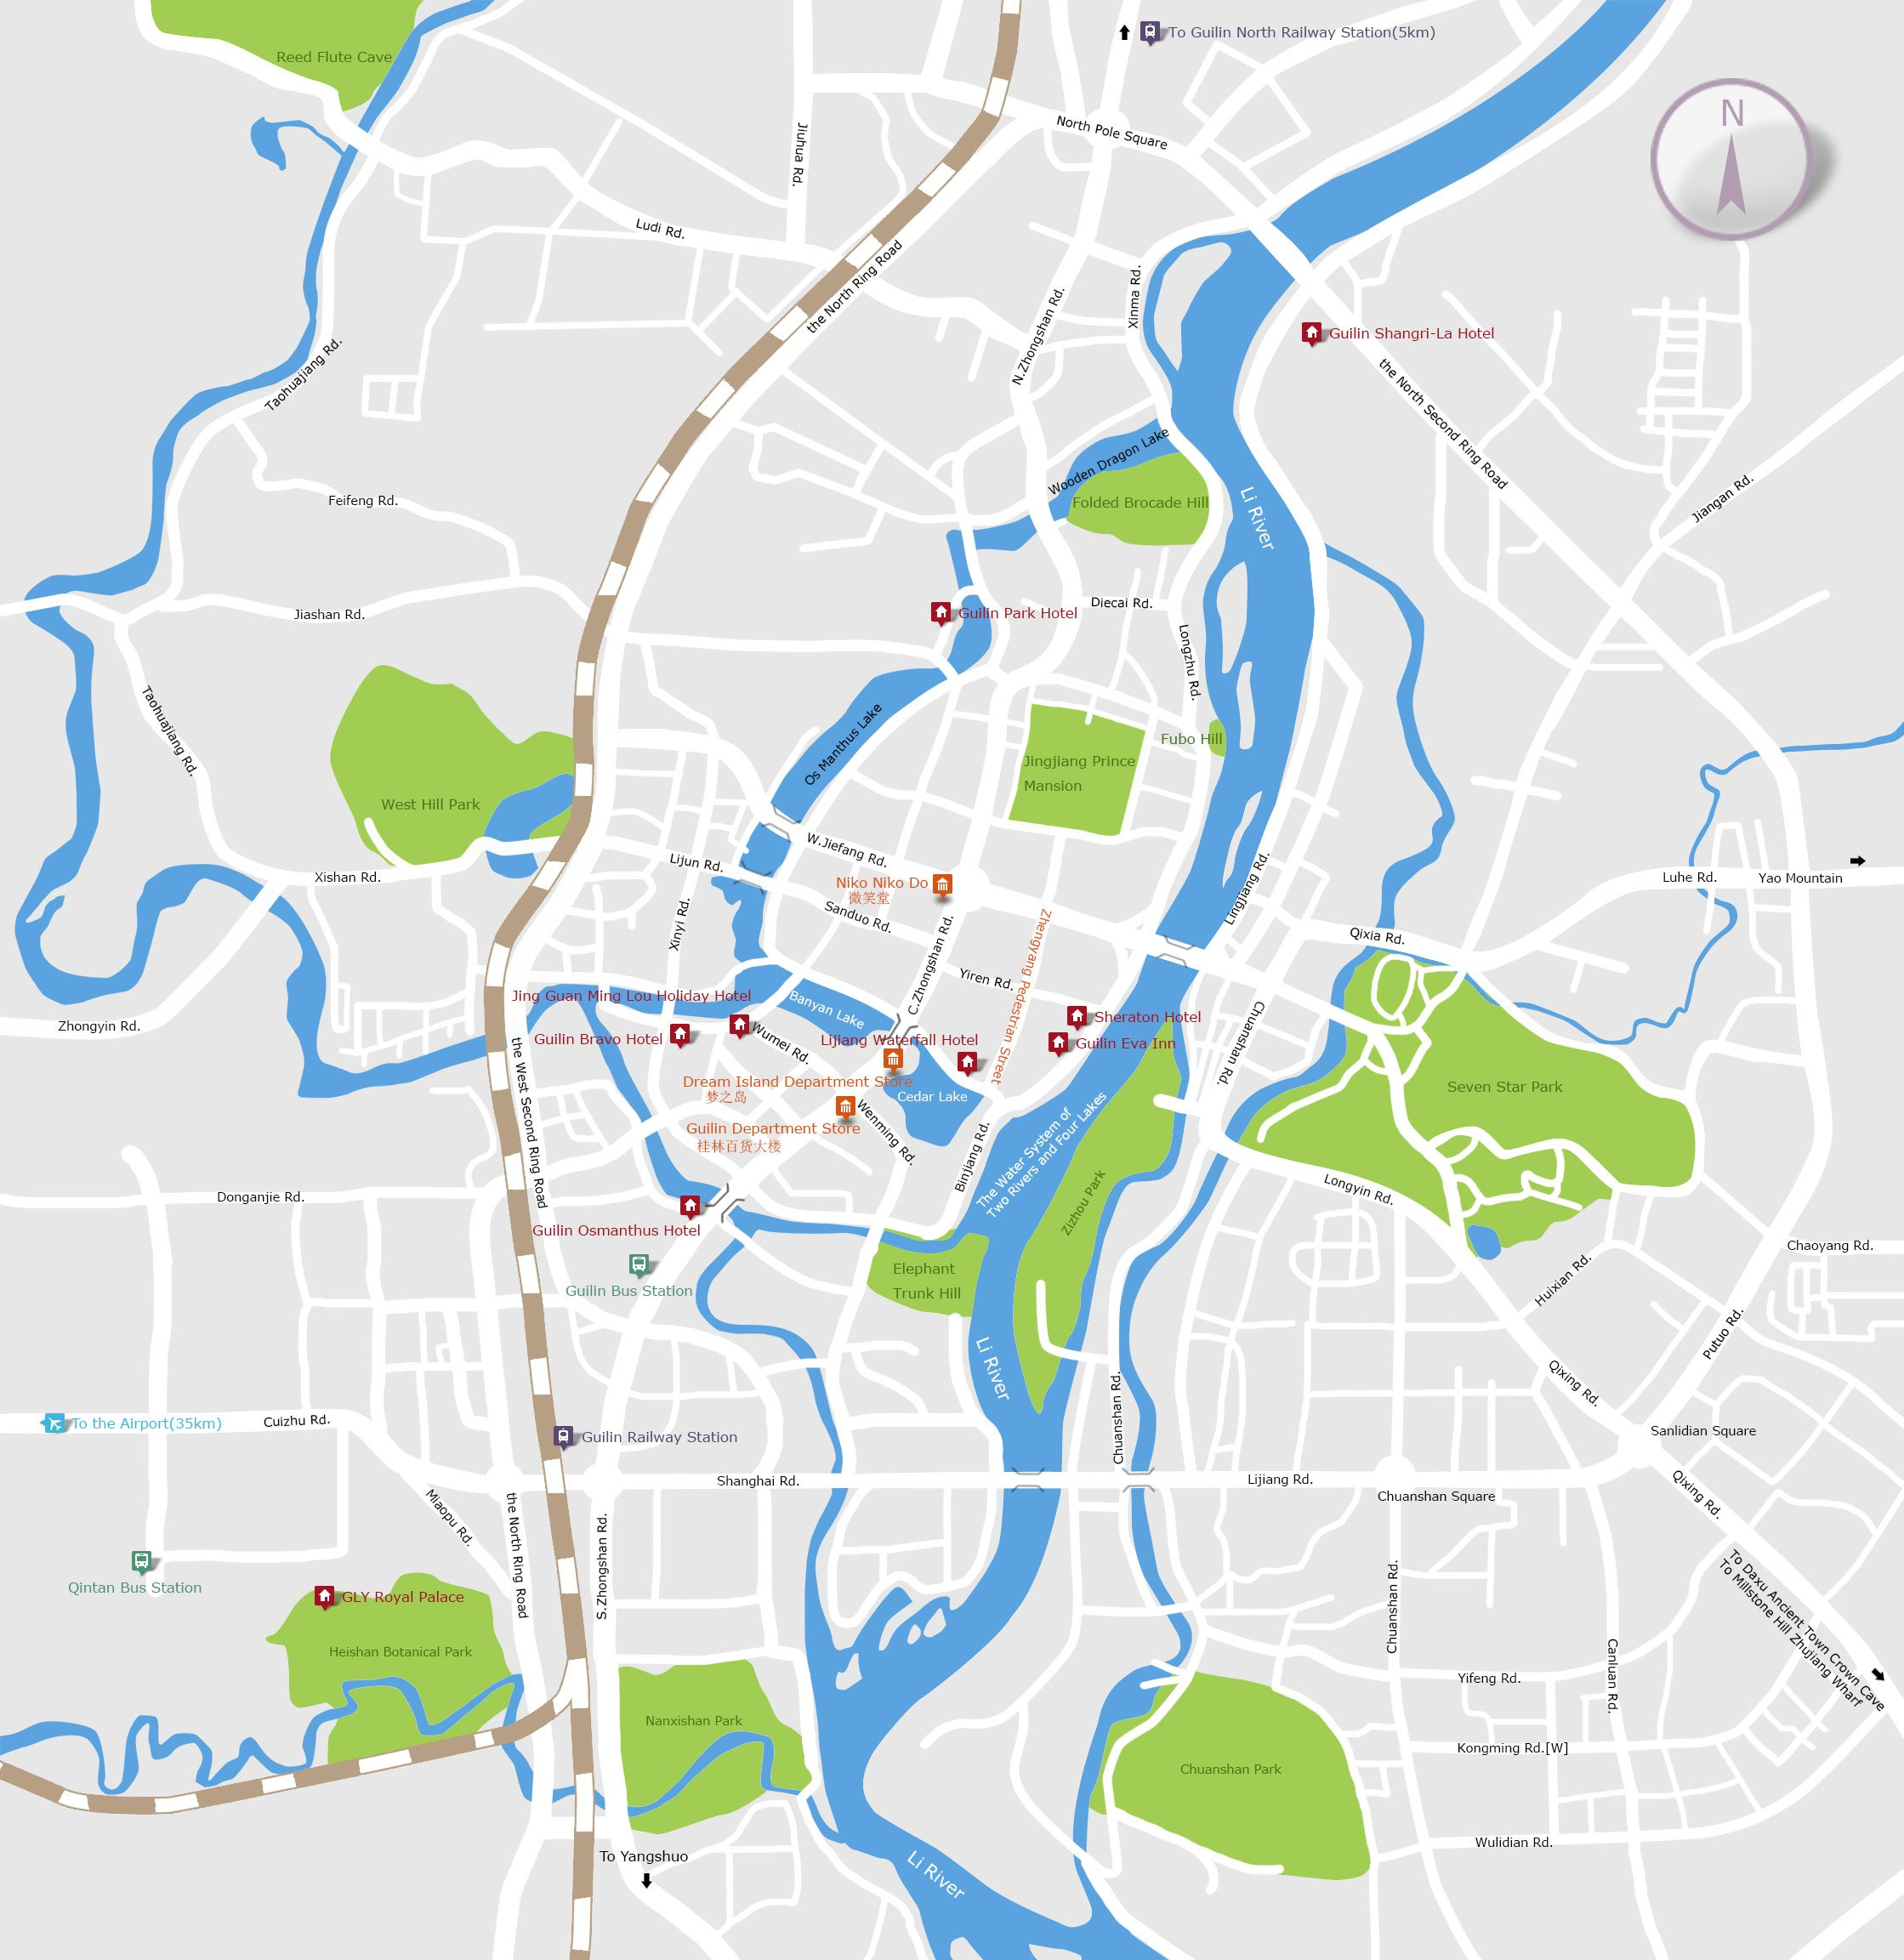 guilin city center map